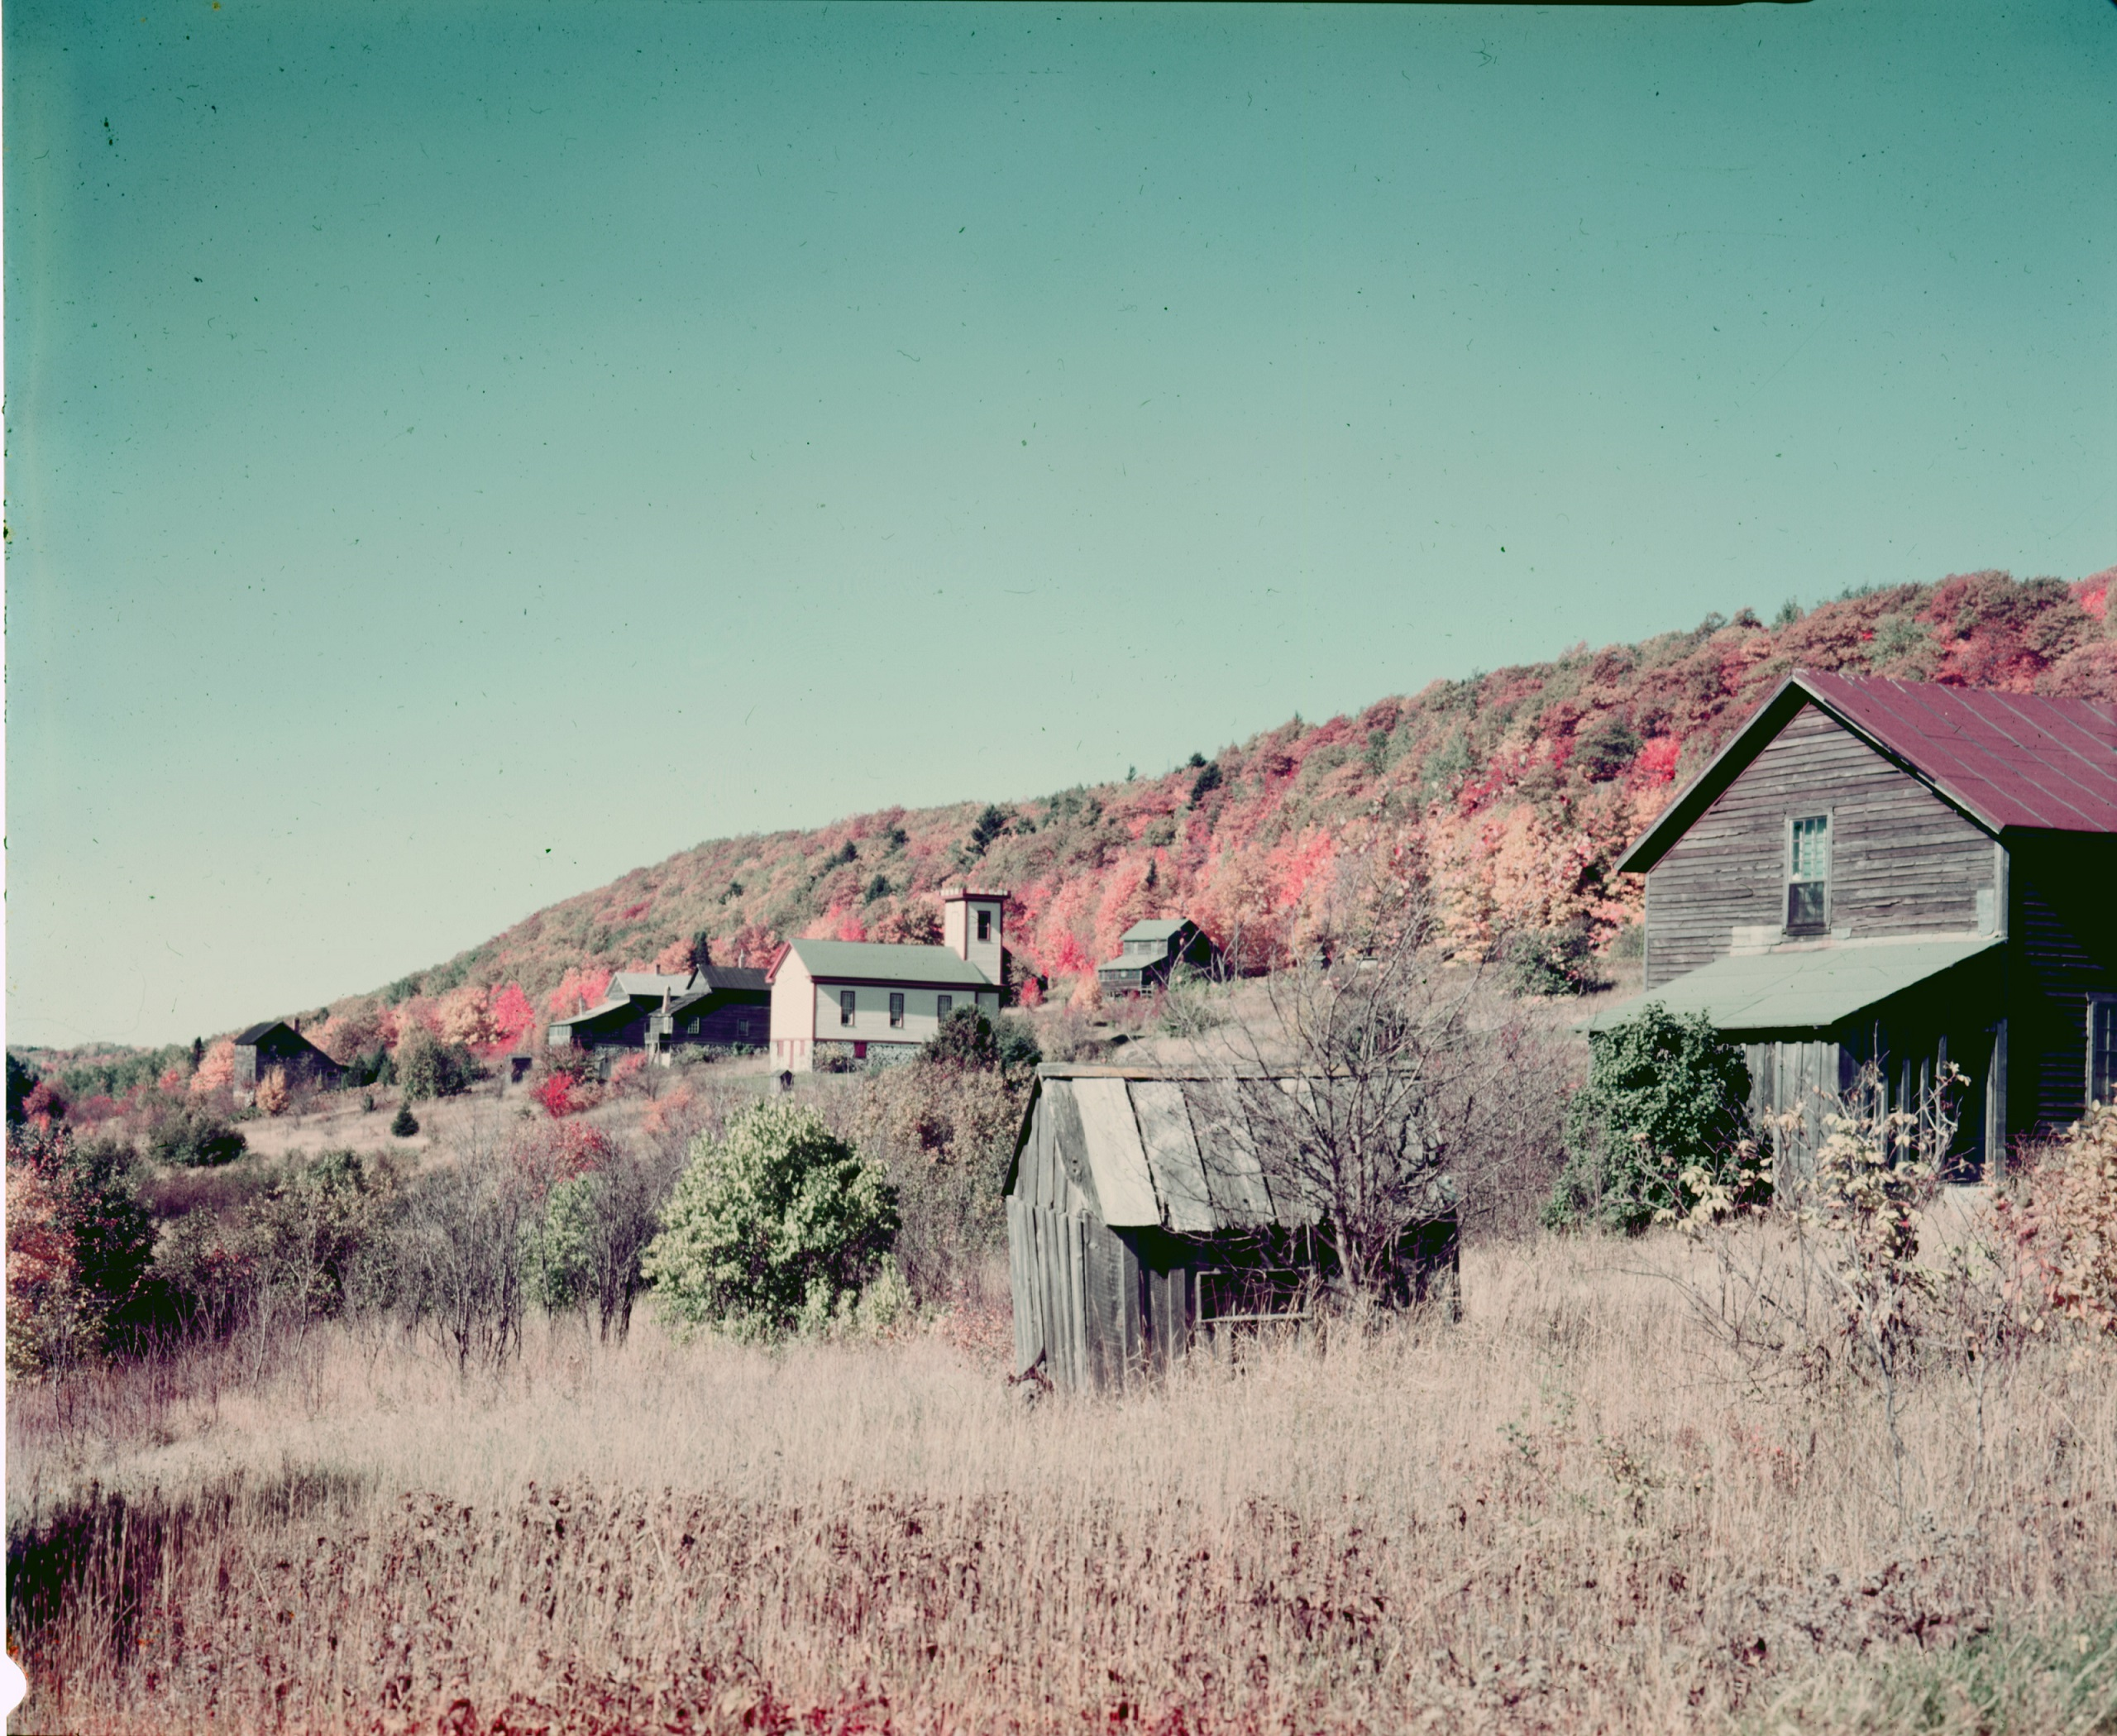 Photograph of old buildings on the hillside with fall colors.